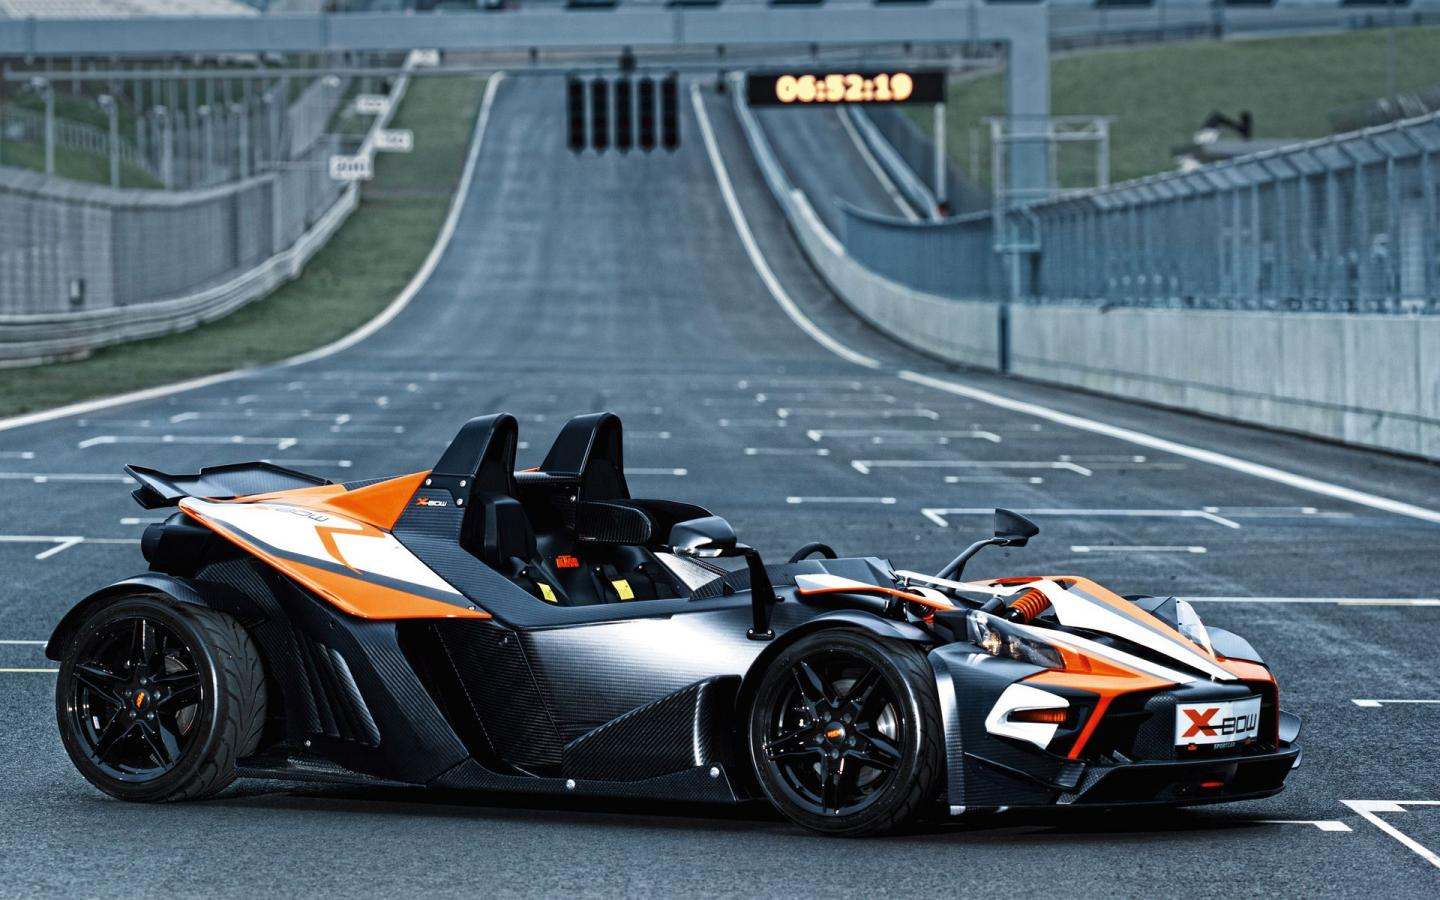 Ktm Crossbow Car Price